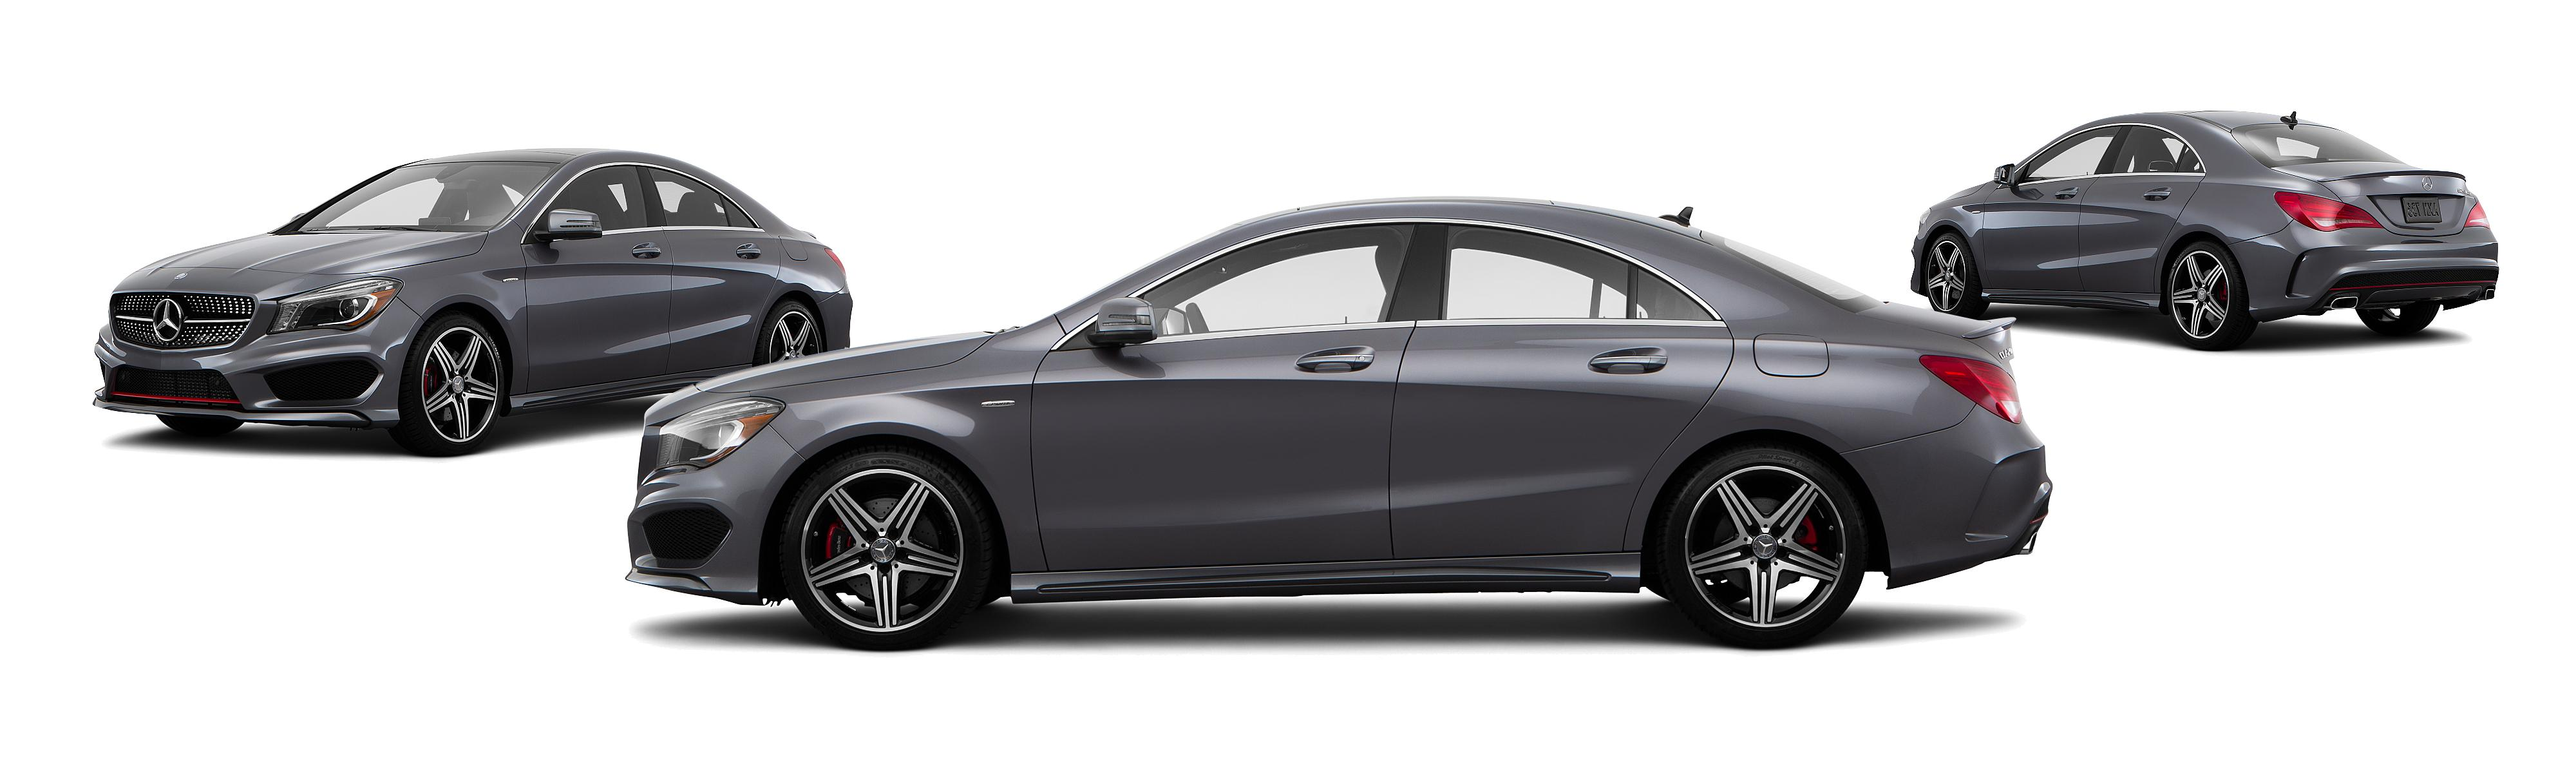 2016 Mercedes Benz CLA AWD CLA 250 4MATIC 4dr Sedan Research